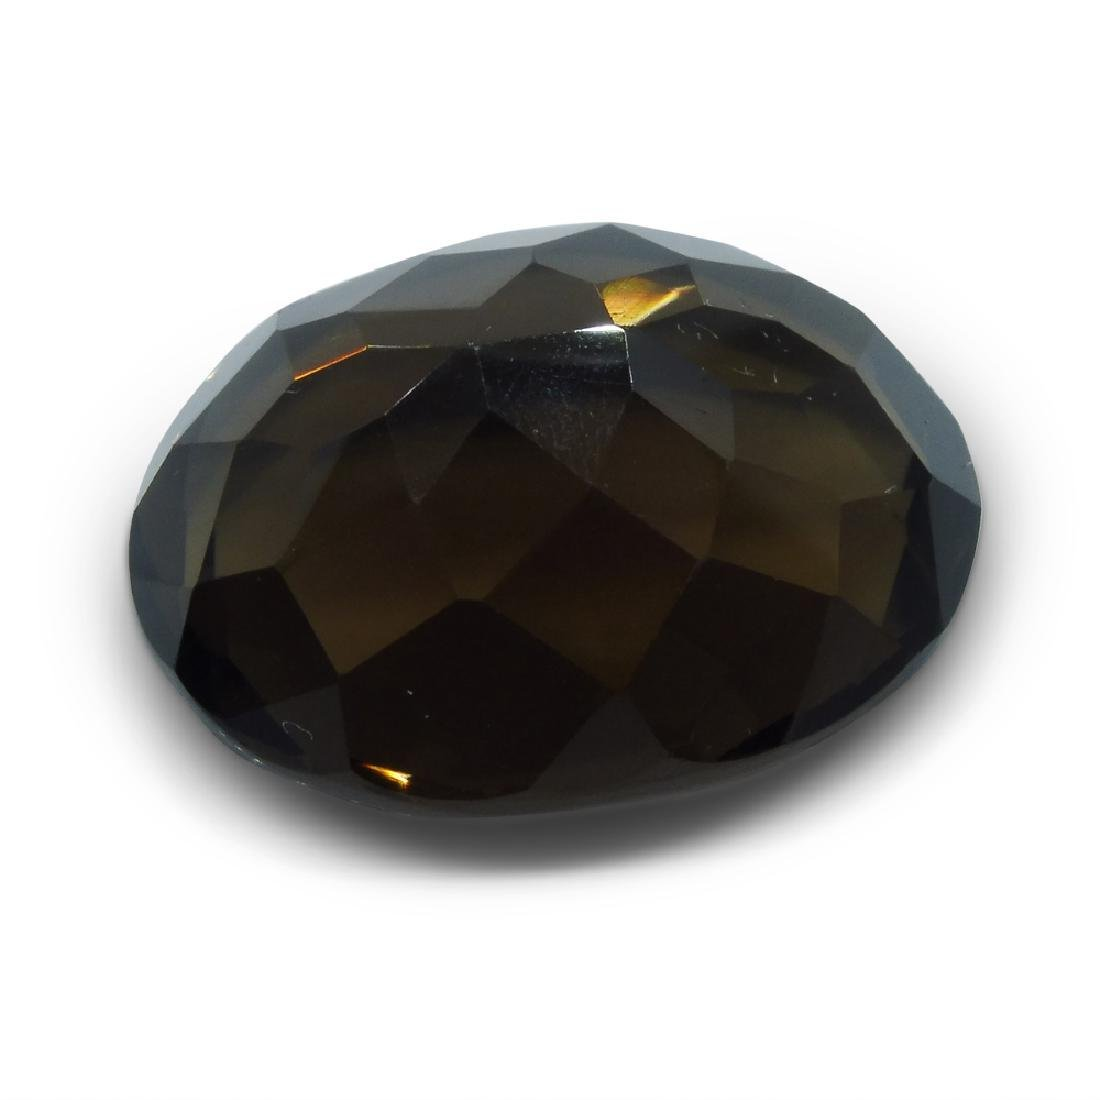 24.73 ct Oval Smokey Quartz - 6